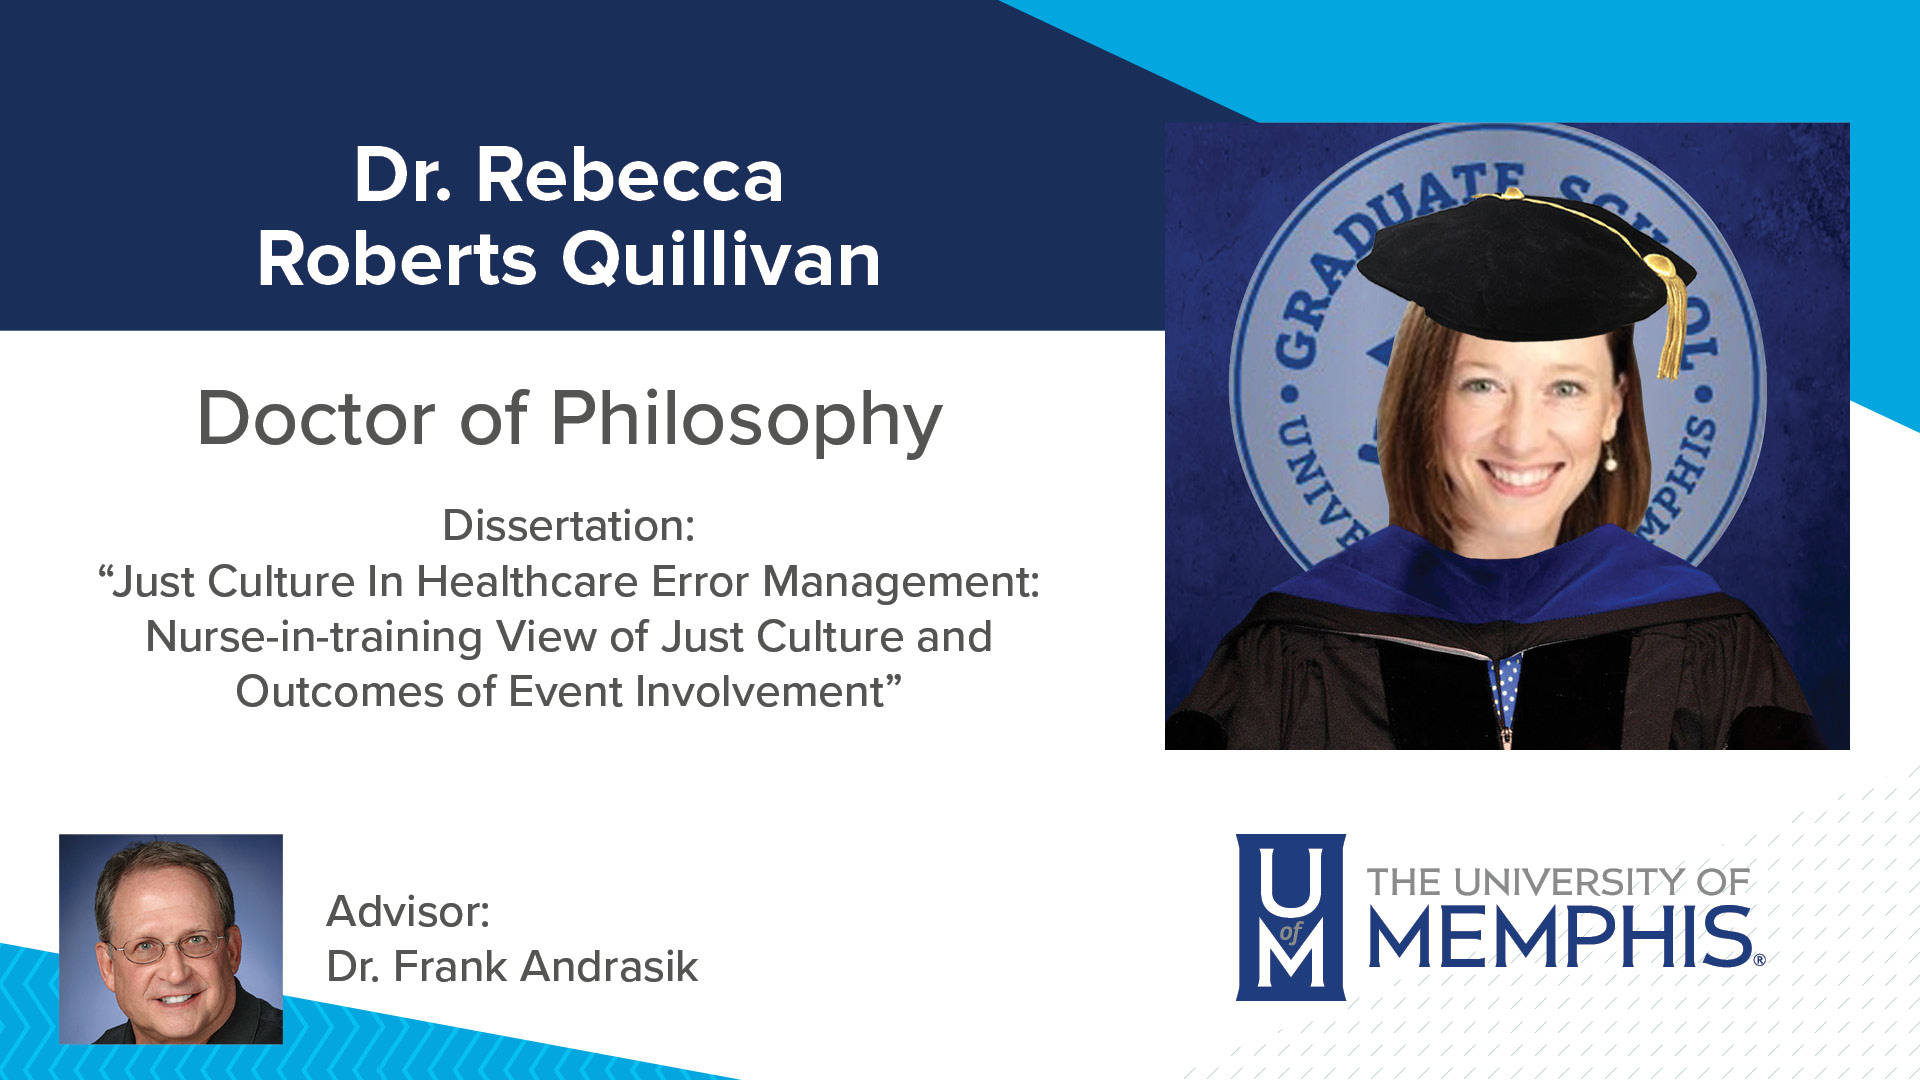 """Dr. Rebecca Roberts Quillivan Dissertation: """"Just Culture In Healthcare Error Management: Nurse-in-training View of Just Culture and Outcomes of Event Involvement """" Major Professor: Dr. Frank Andrasik"""